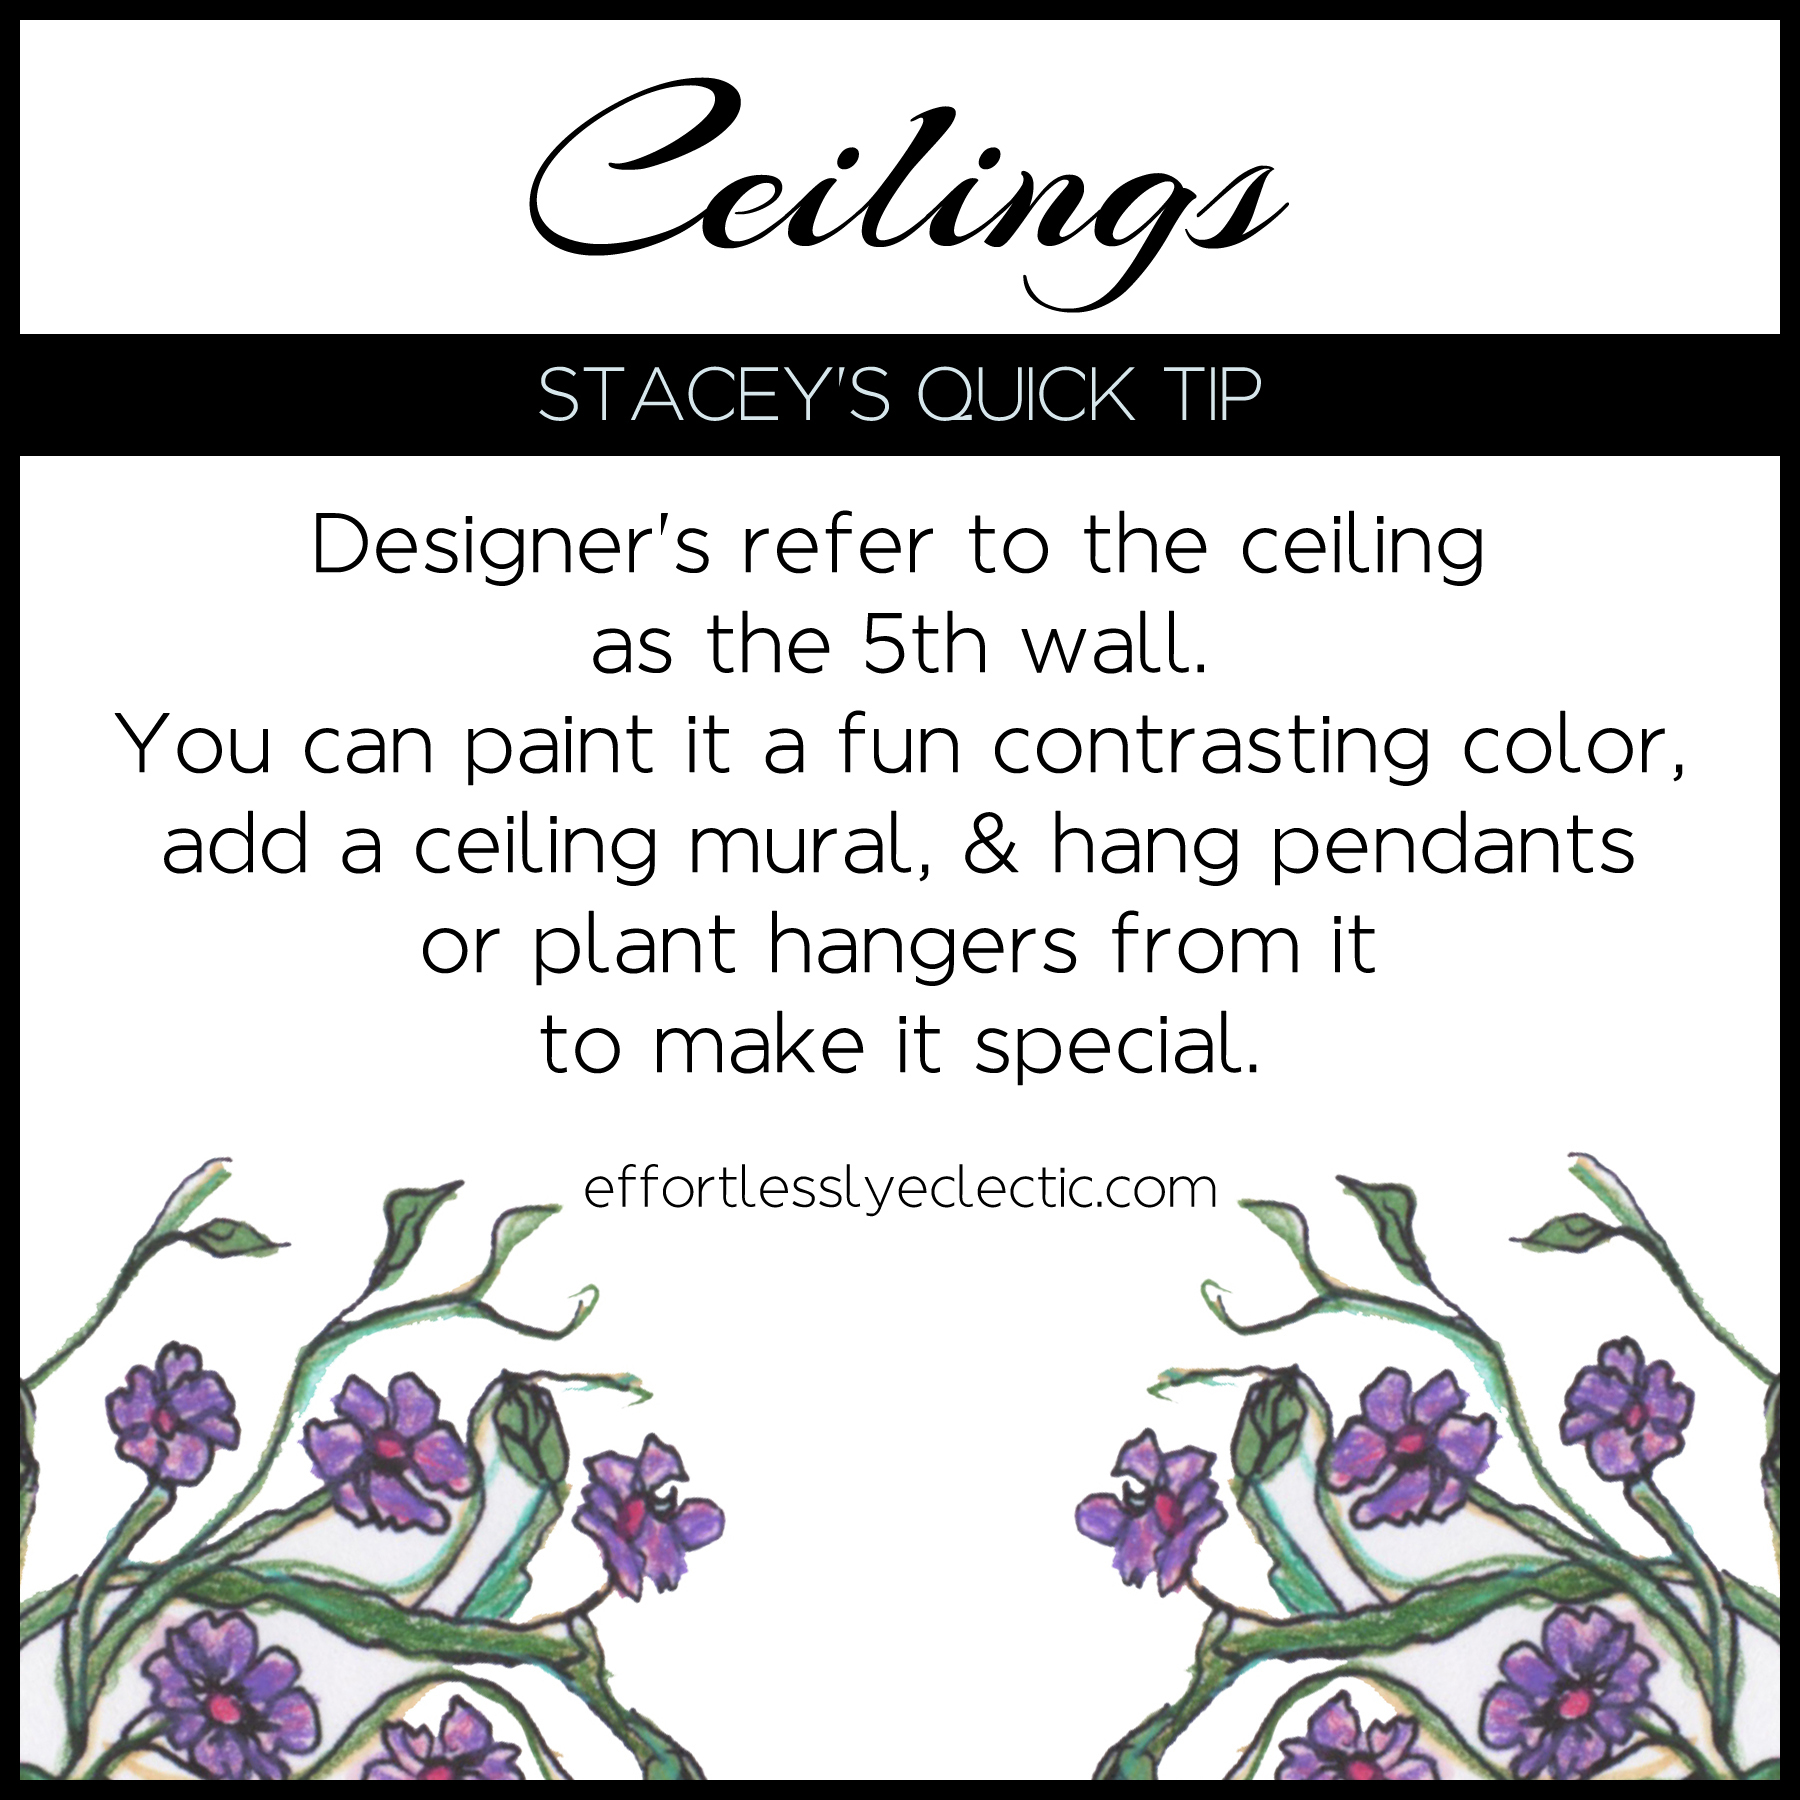 Ceilings - A home decorating tip about how to decorate ceilings